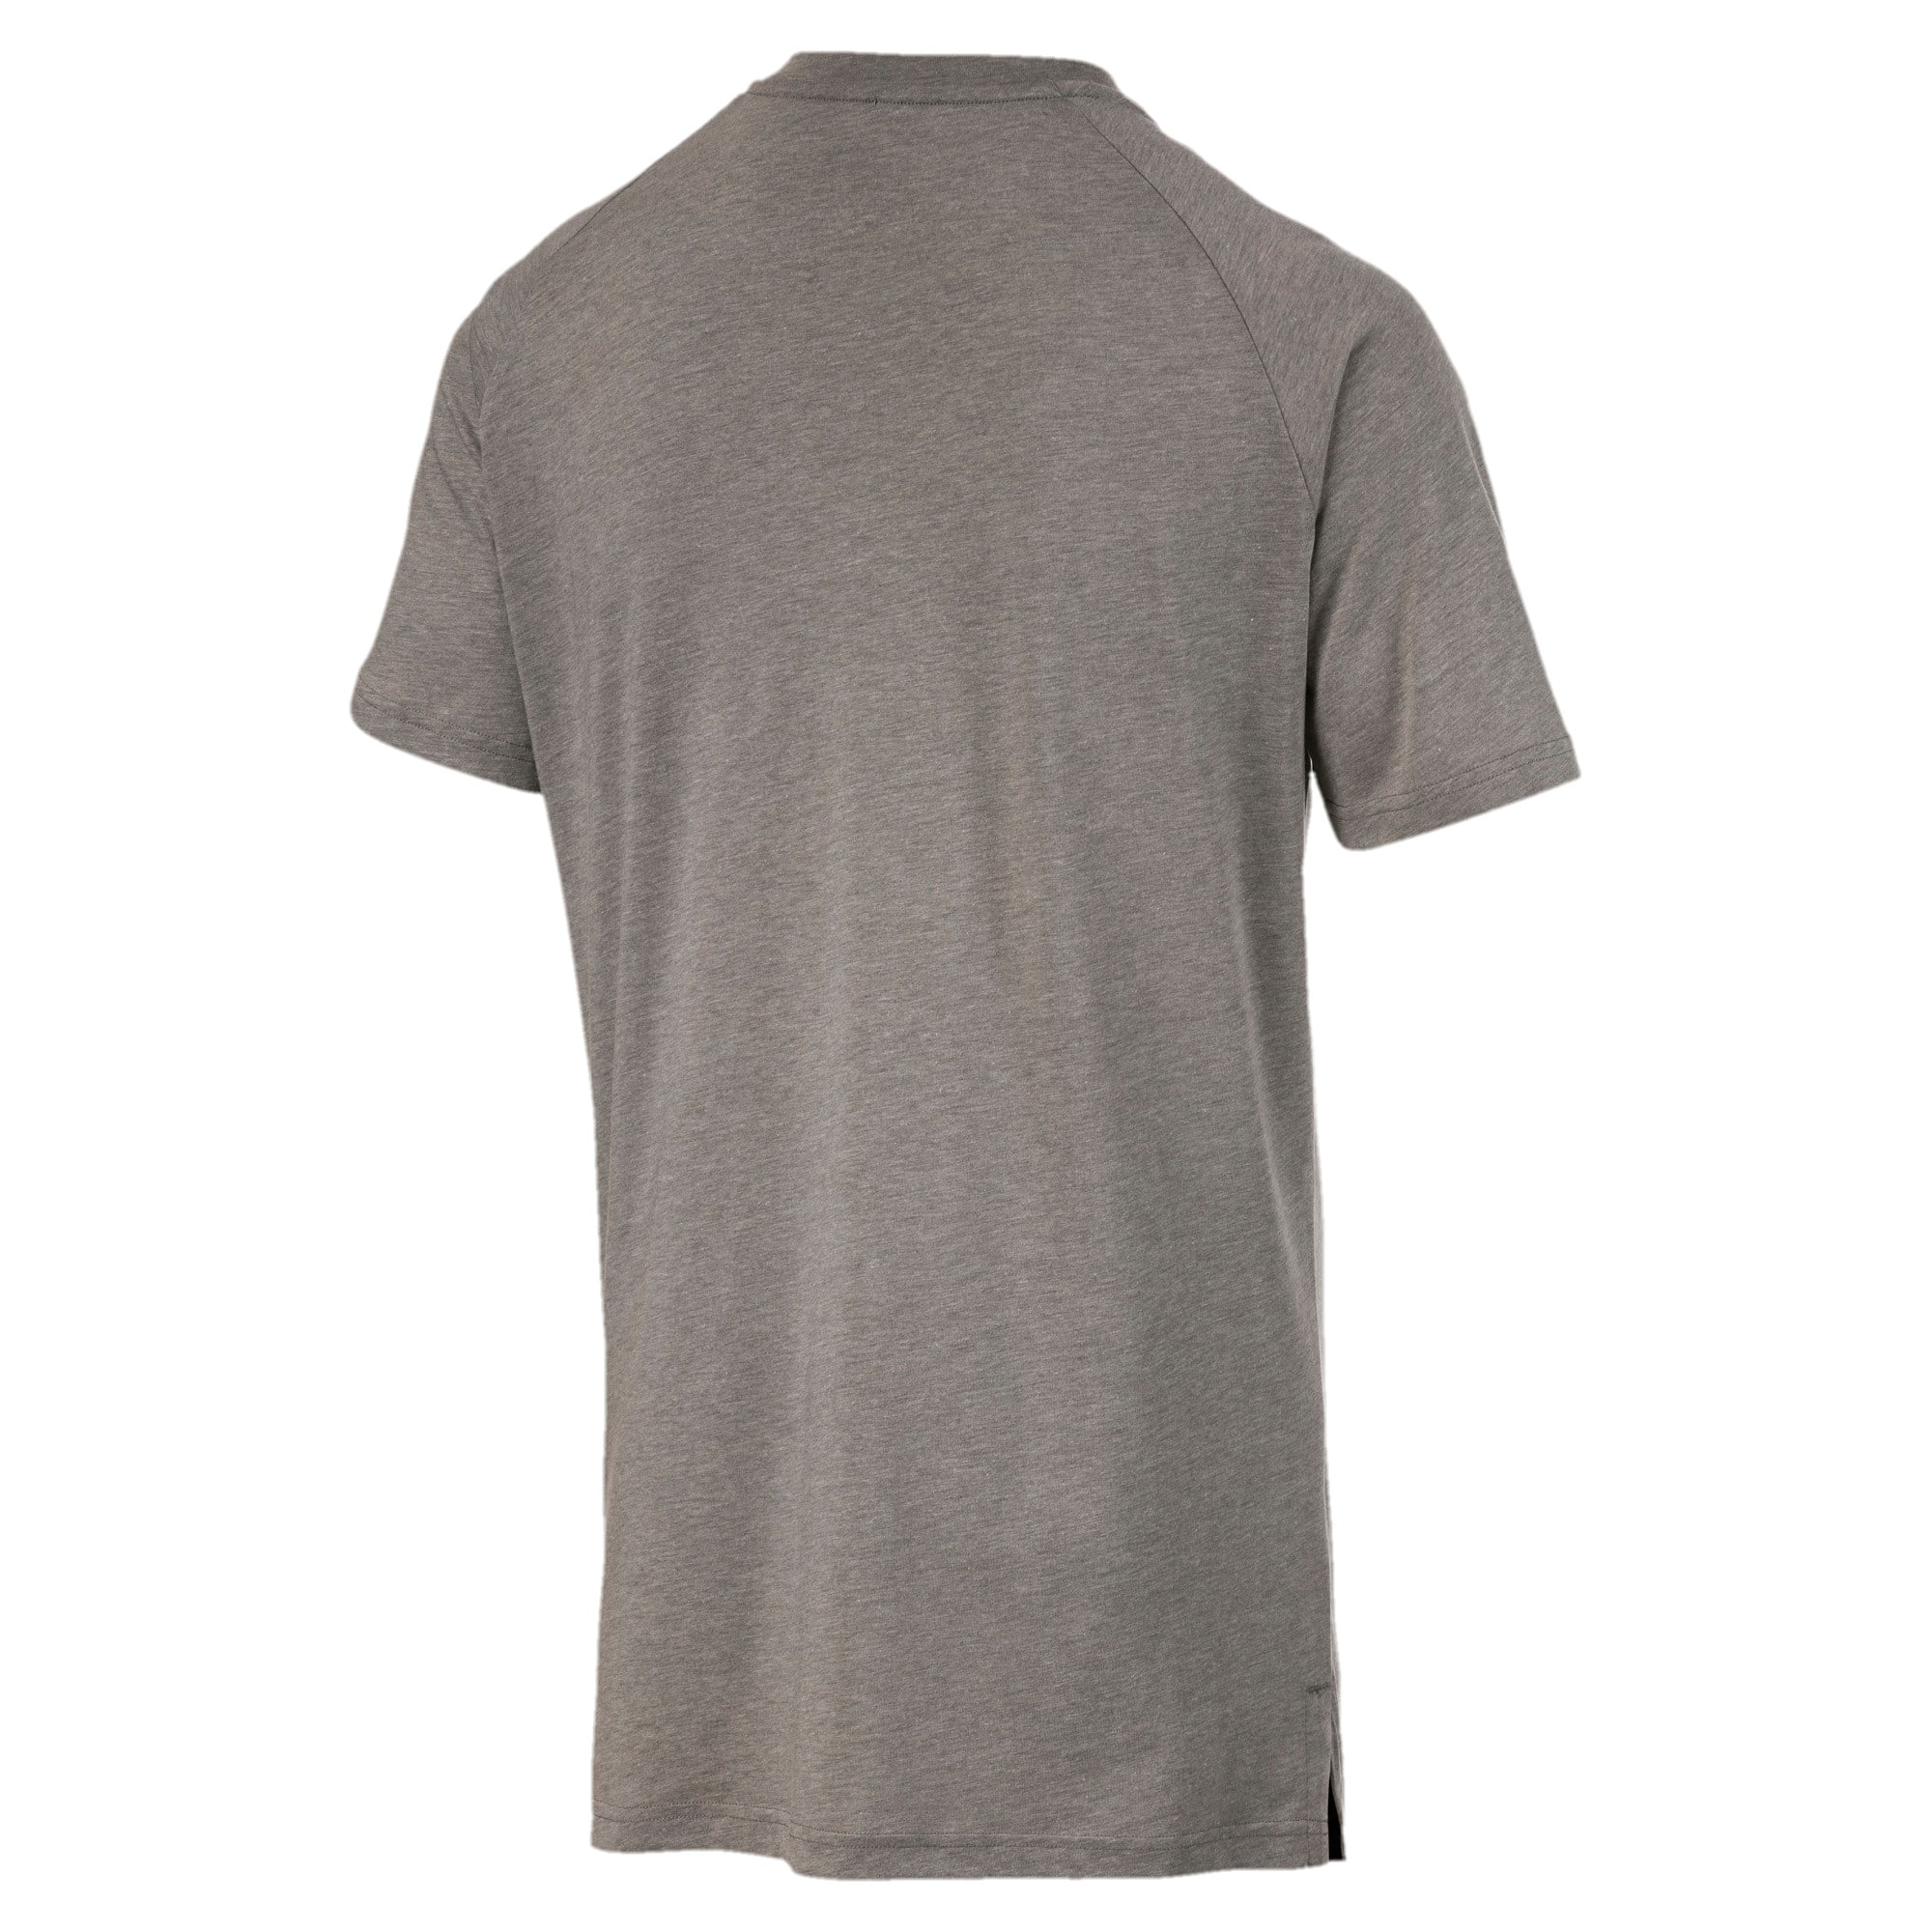 Thumbnail 5 of Reactive Herren T-Shirt, Medium Gray Heather, medium